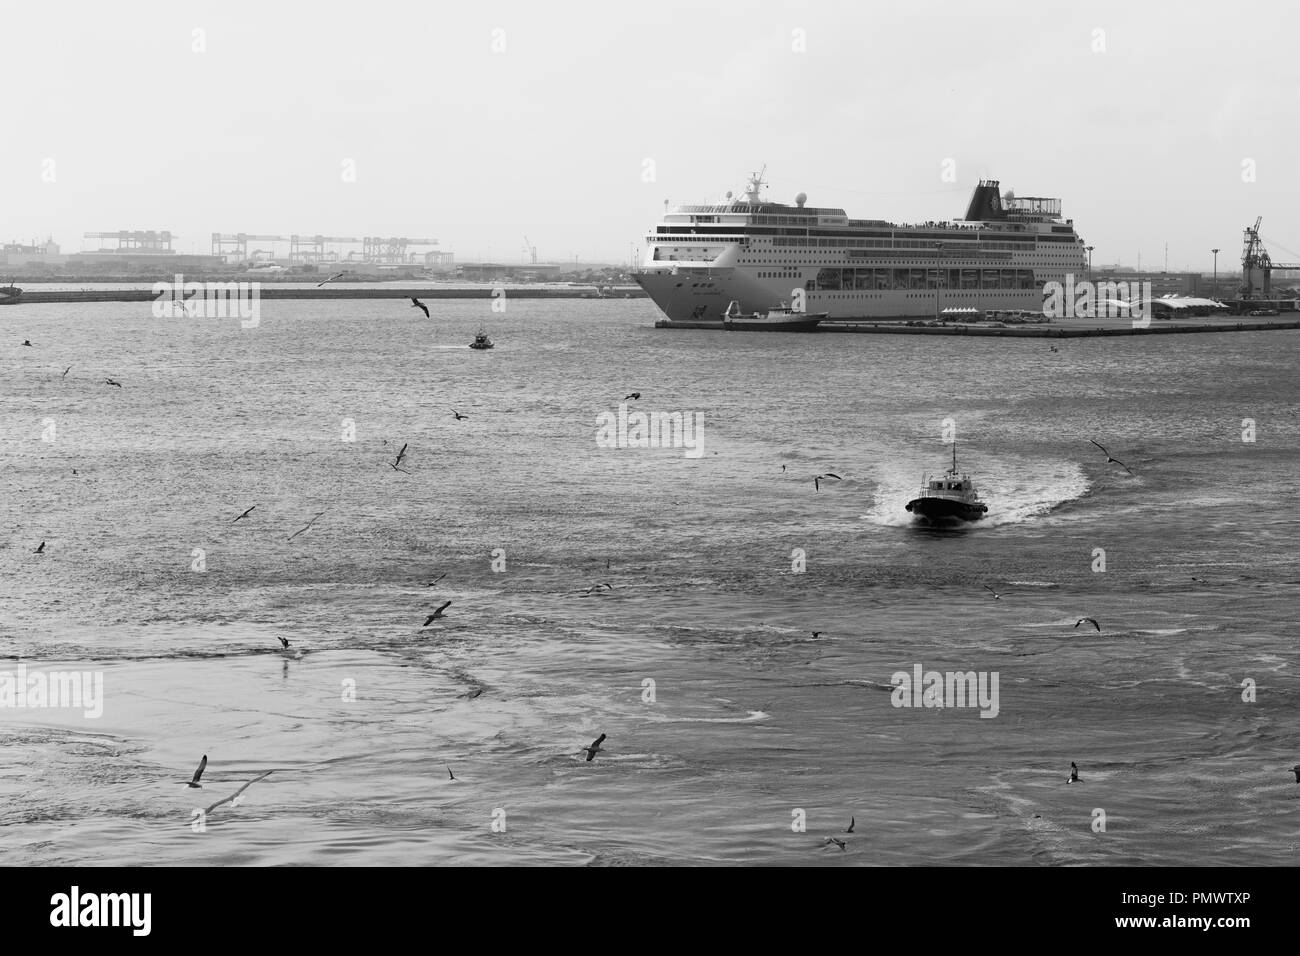 A pilot boat escorts a cruise ship (not in shot) out to sea with another cruise ship in the background. Gulls swirl above the disturbed water. - Stock Image